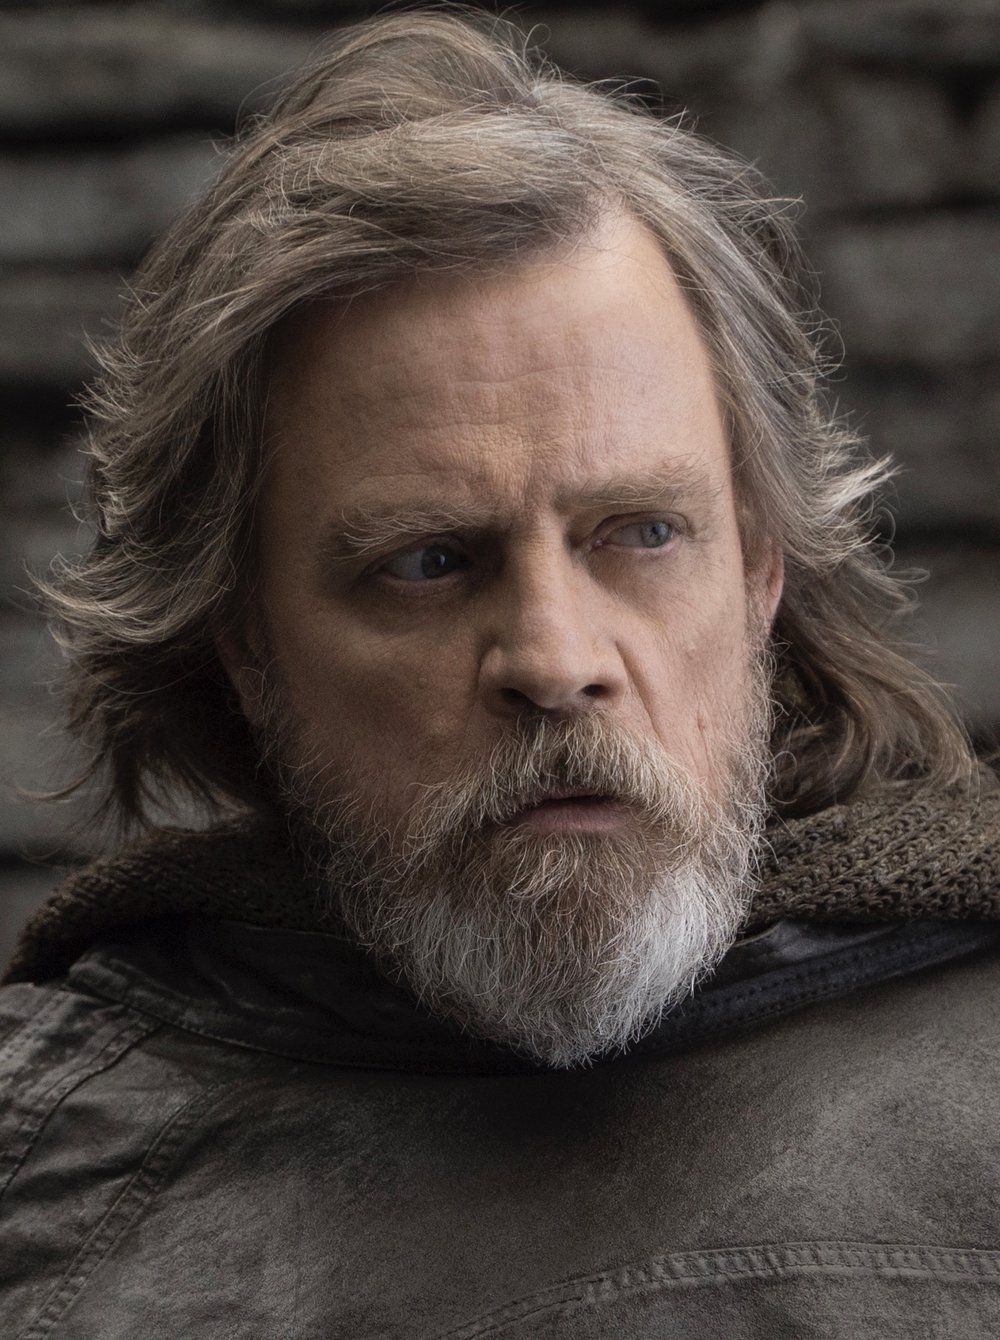 This is a copyrighted promotional image of Luke Skywalker. It is believed that the copyright holder has granted permission for use under the fair use provision of United States copyright law. Source:  http://www.wdsmediafile.com/walt-disney-studios/TheLastJedi/photos/  via Wookieepedia